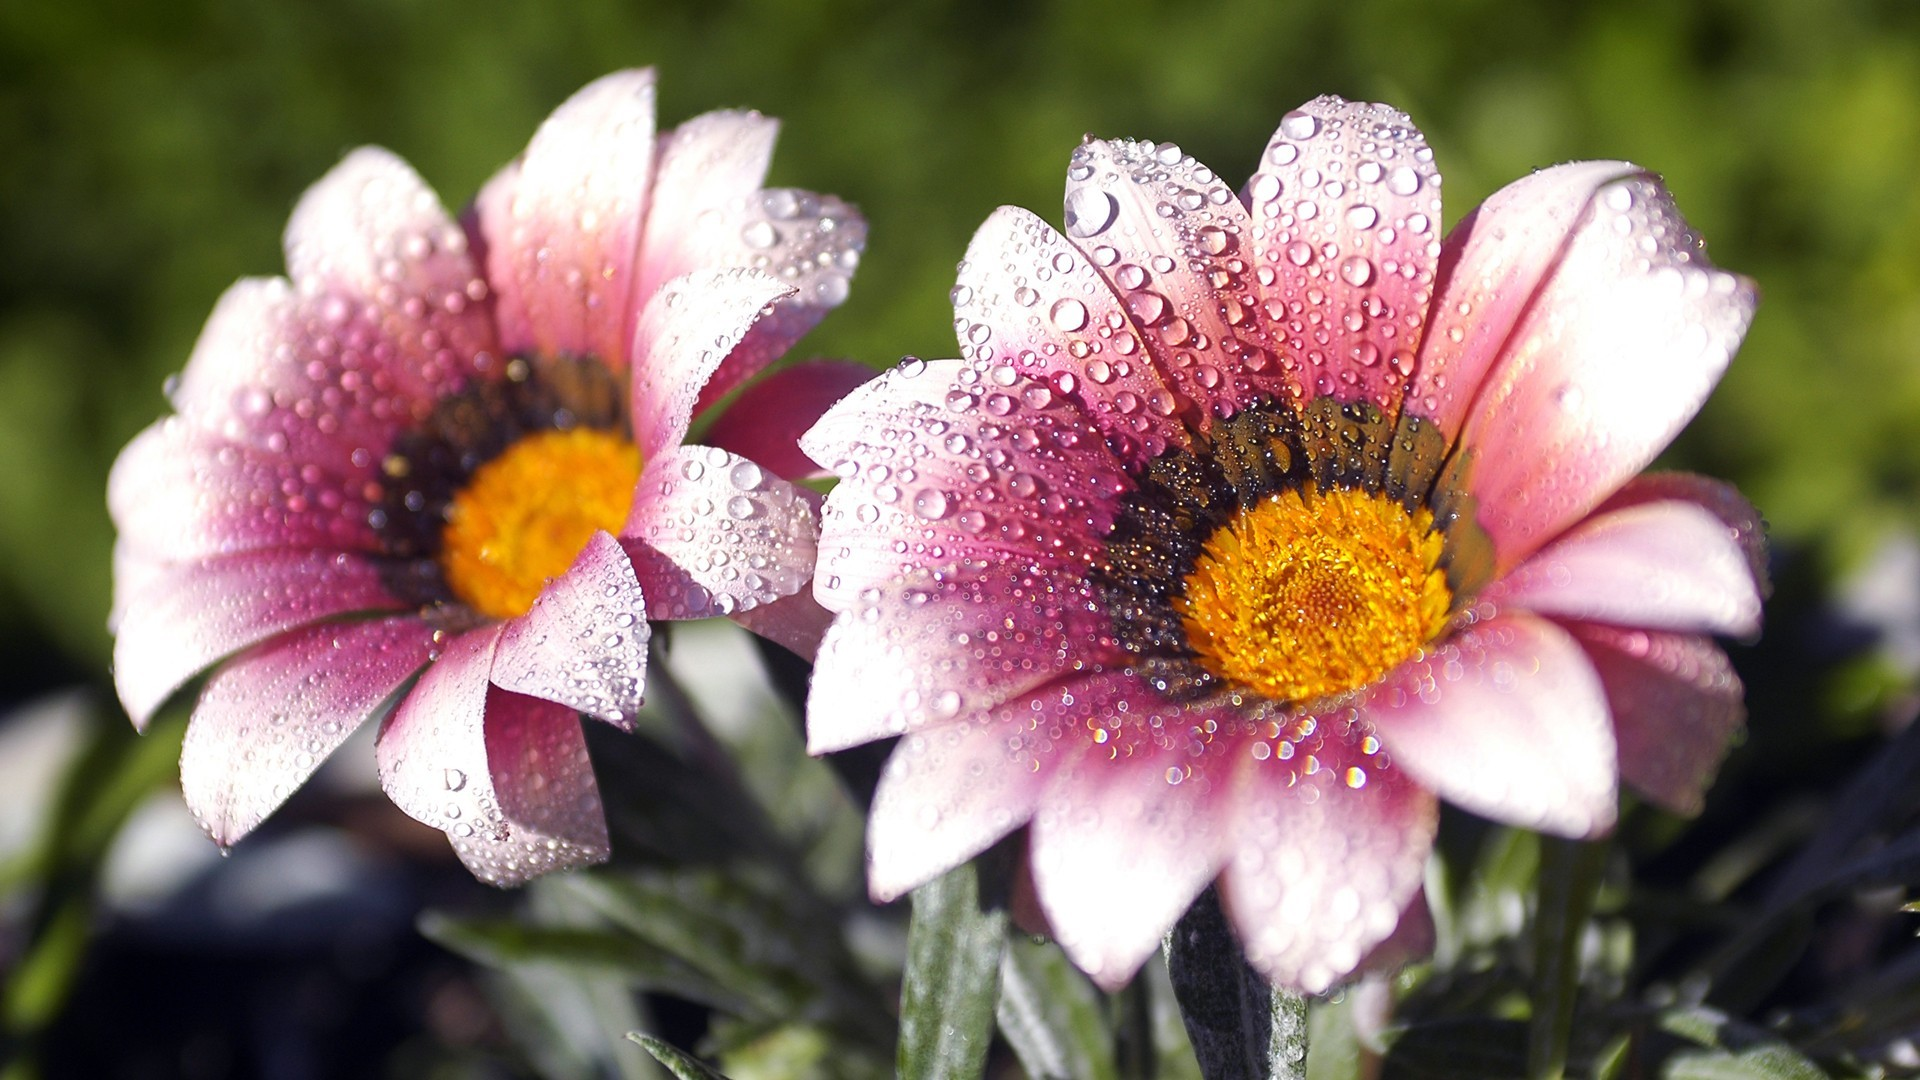 nature Flowers water drops HD Wallpaper